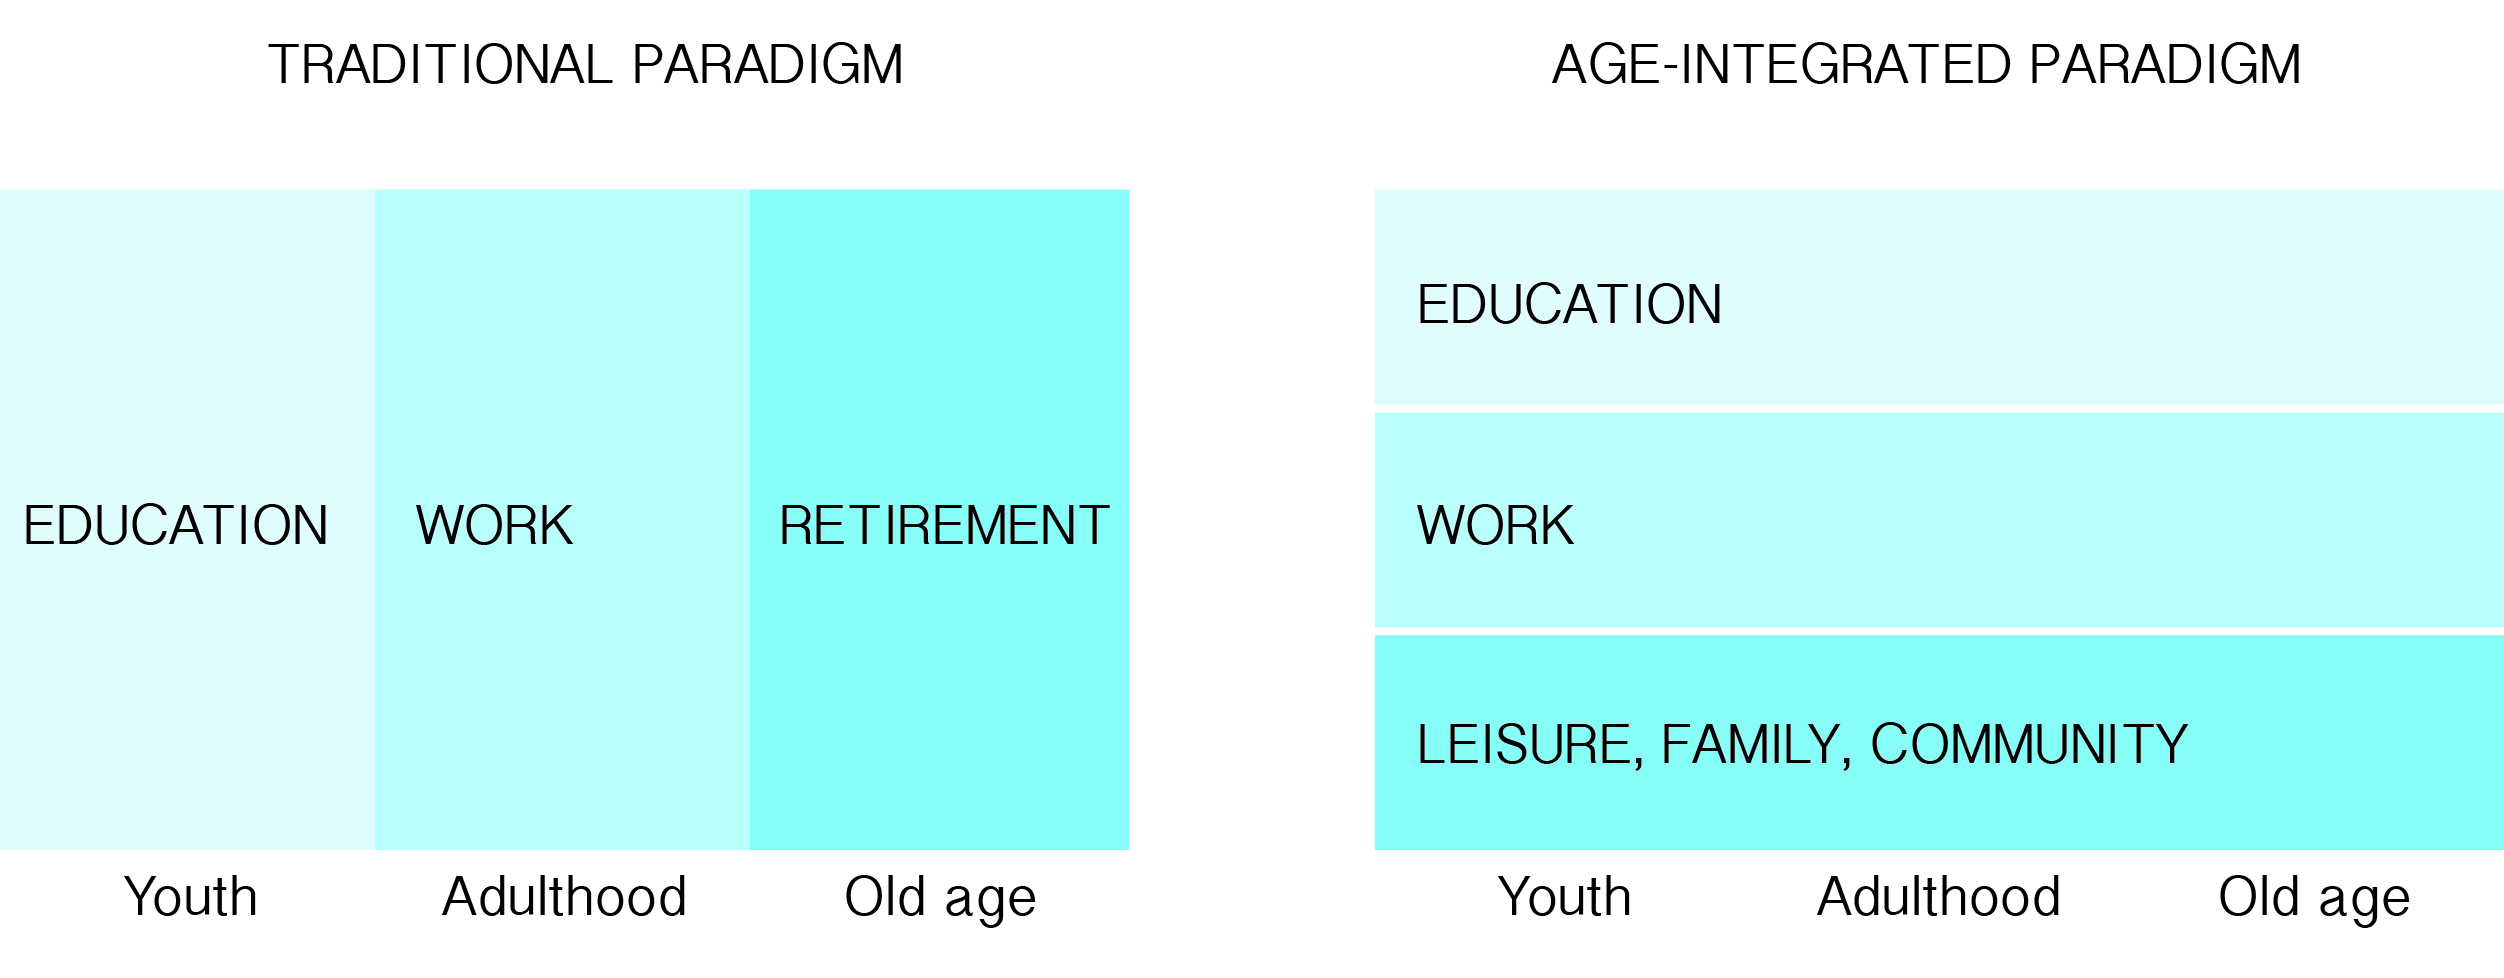 aging populations Image1-ParadigmShift